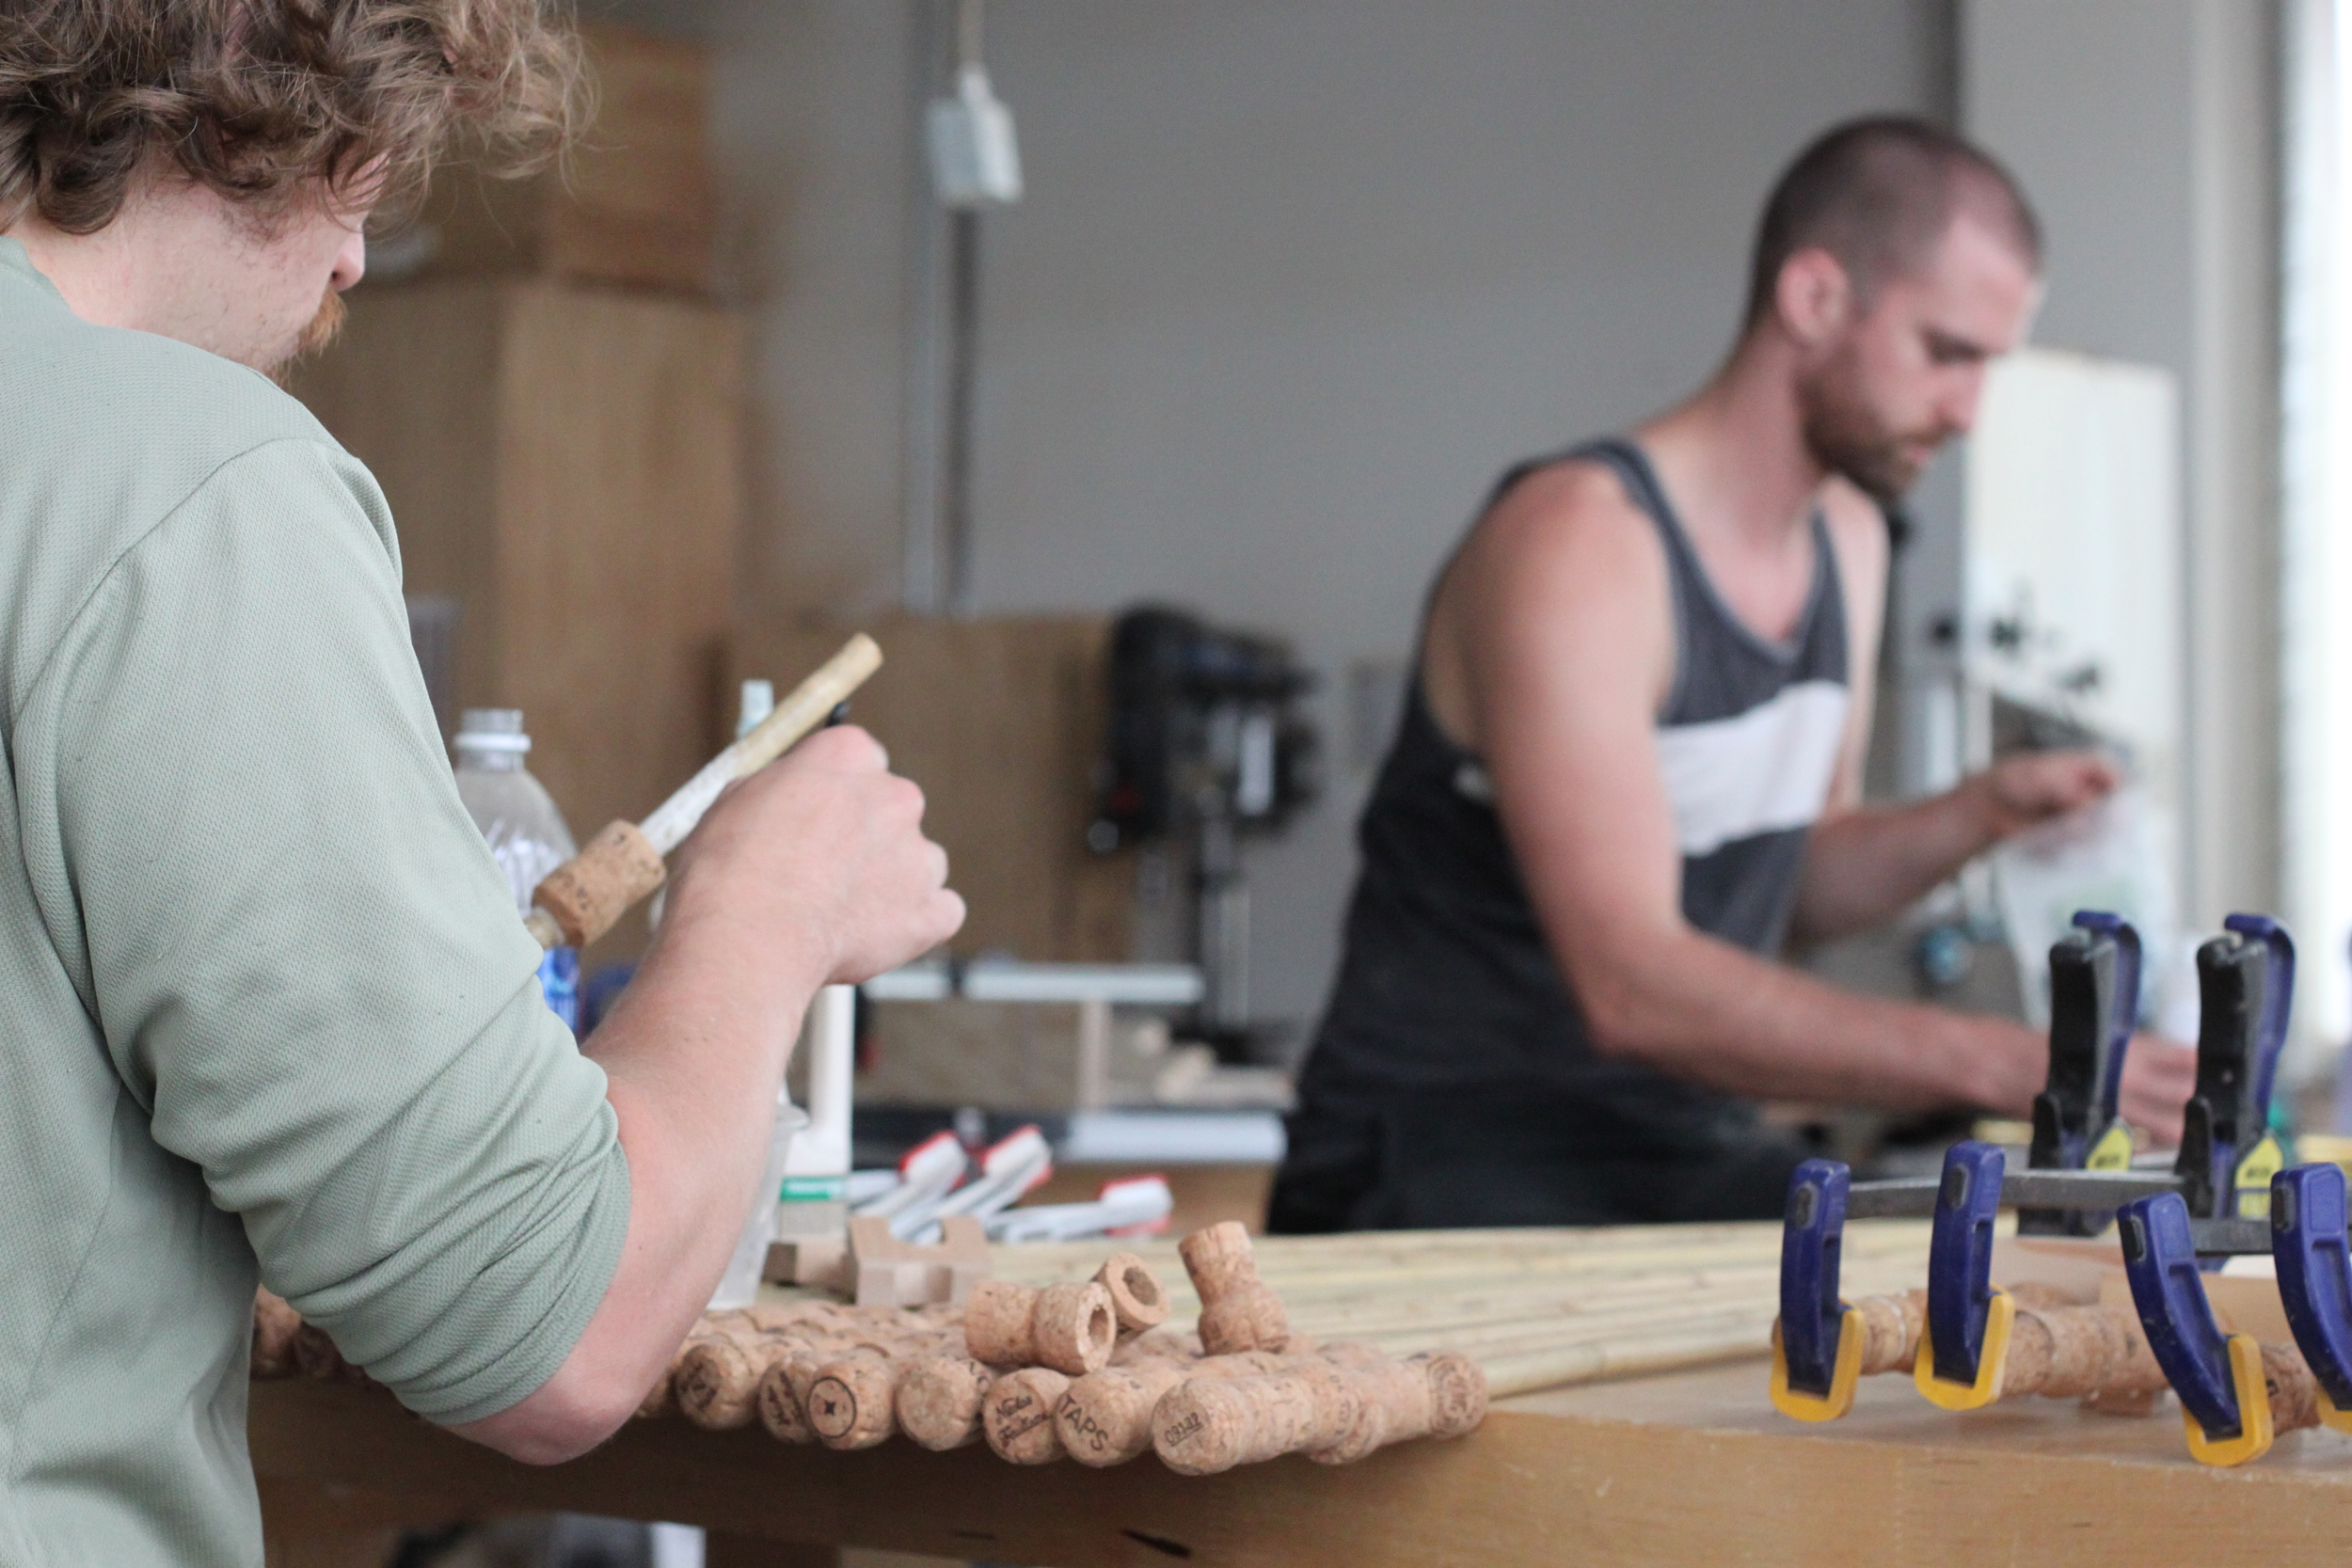 The bamboo walking sticks of Uphill Designs are made by hand in the Pratt Woodworking Studio